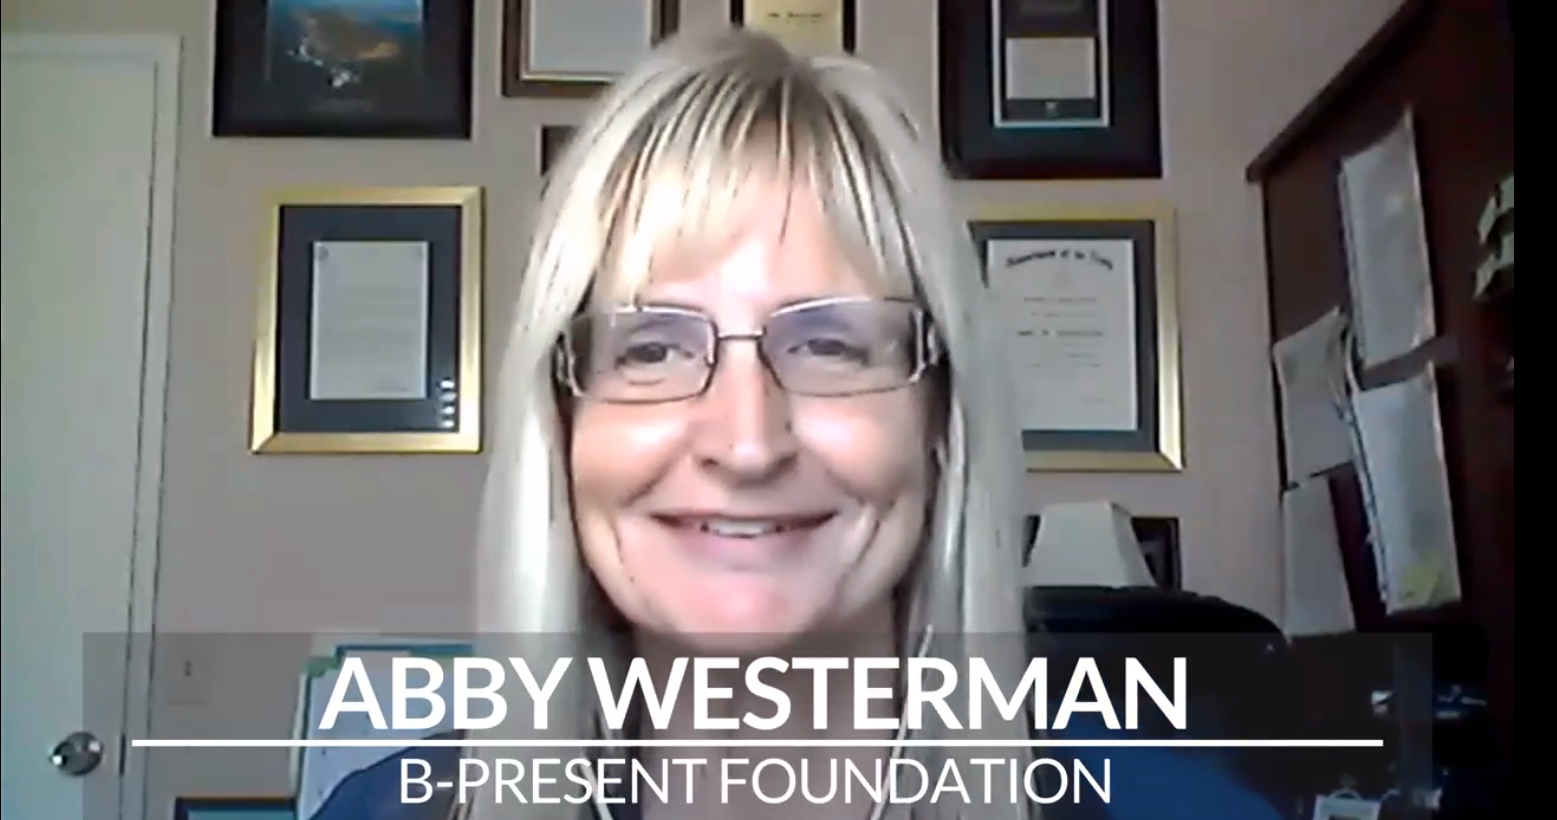 Oncology Tube | Interview with CEO Abby Westerman | September 15, 2020 |